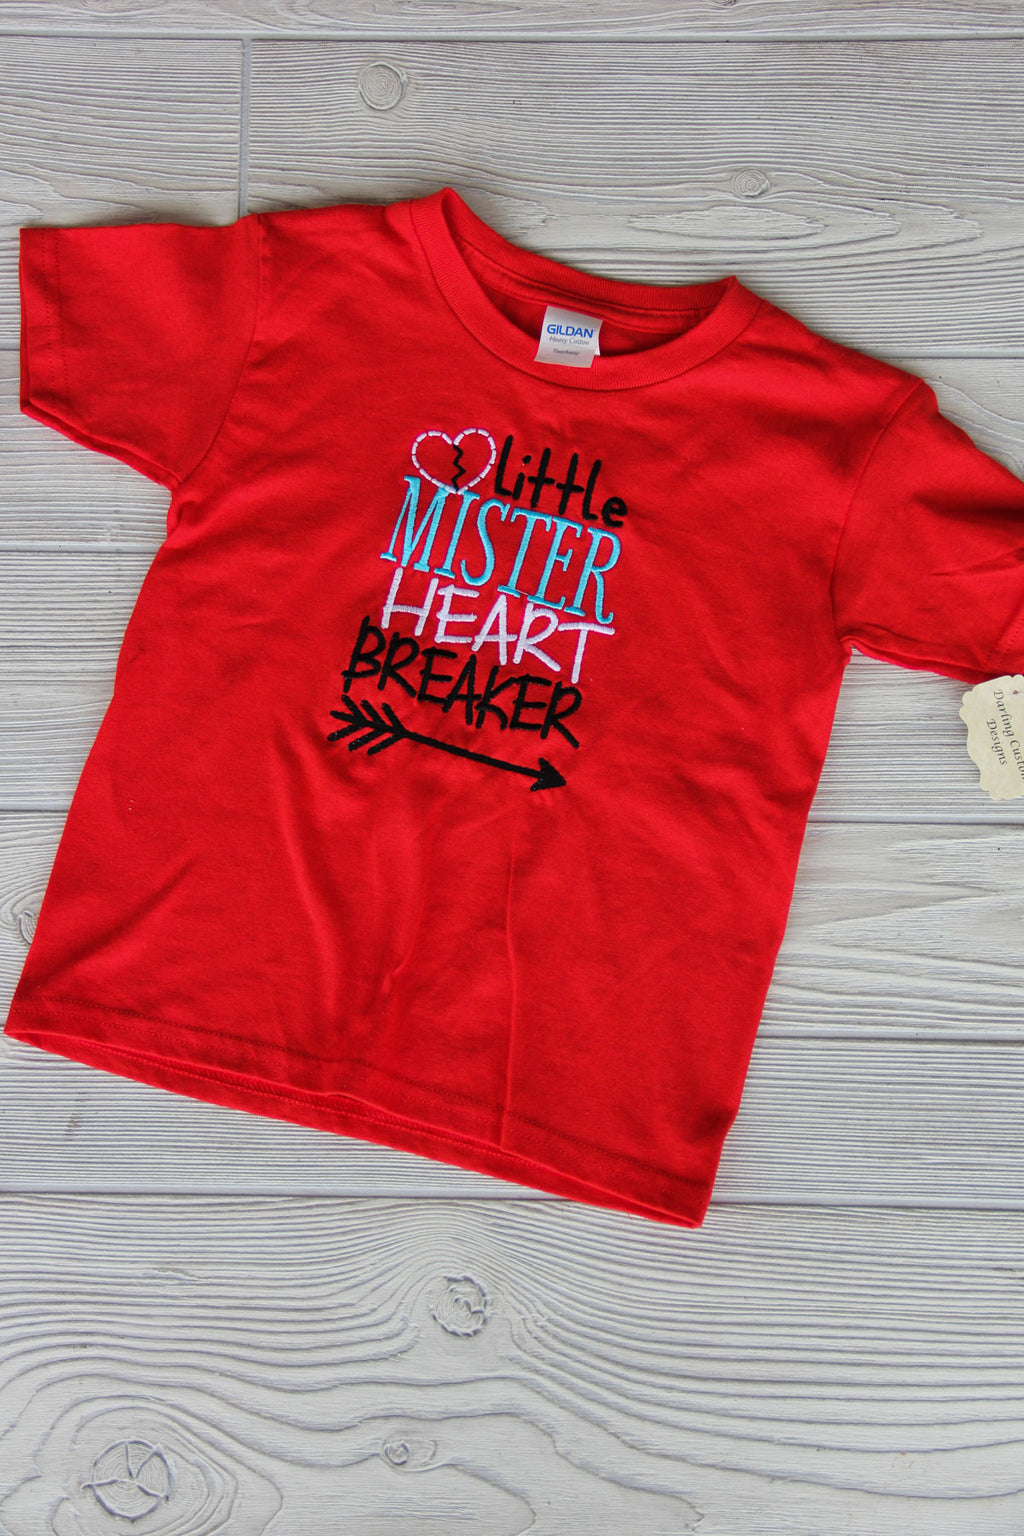 Boy's Heart Breaker Valentine Shirt Darling Custom Designs